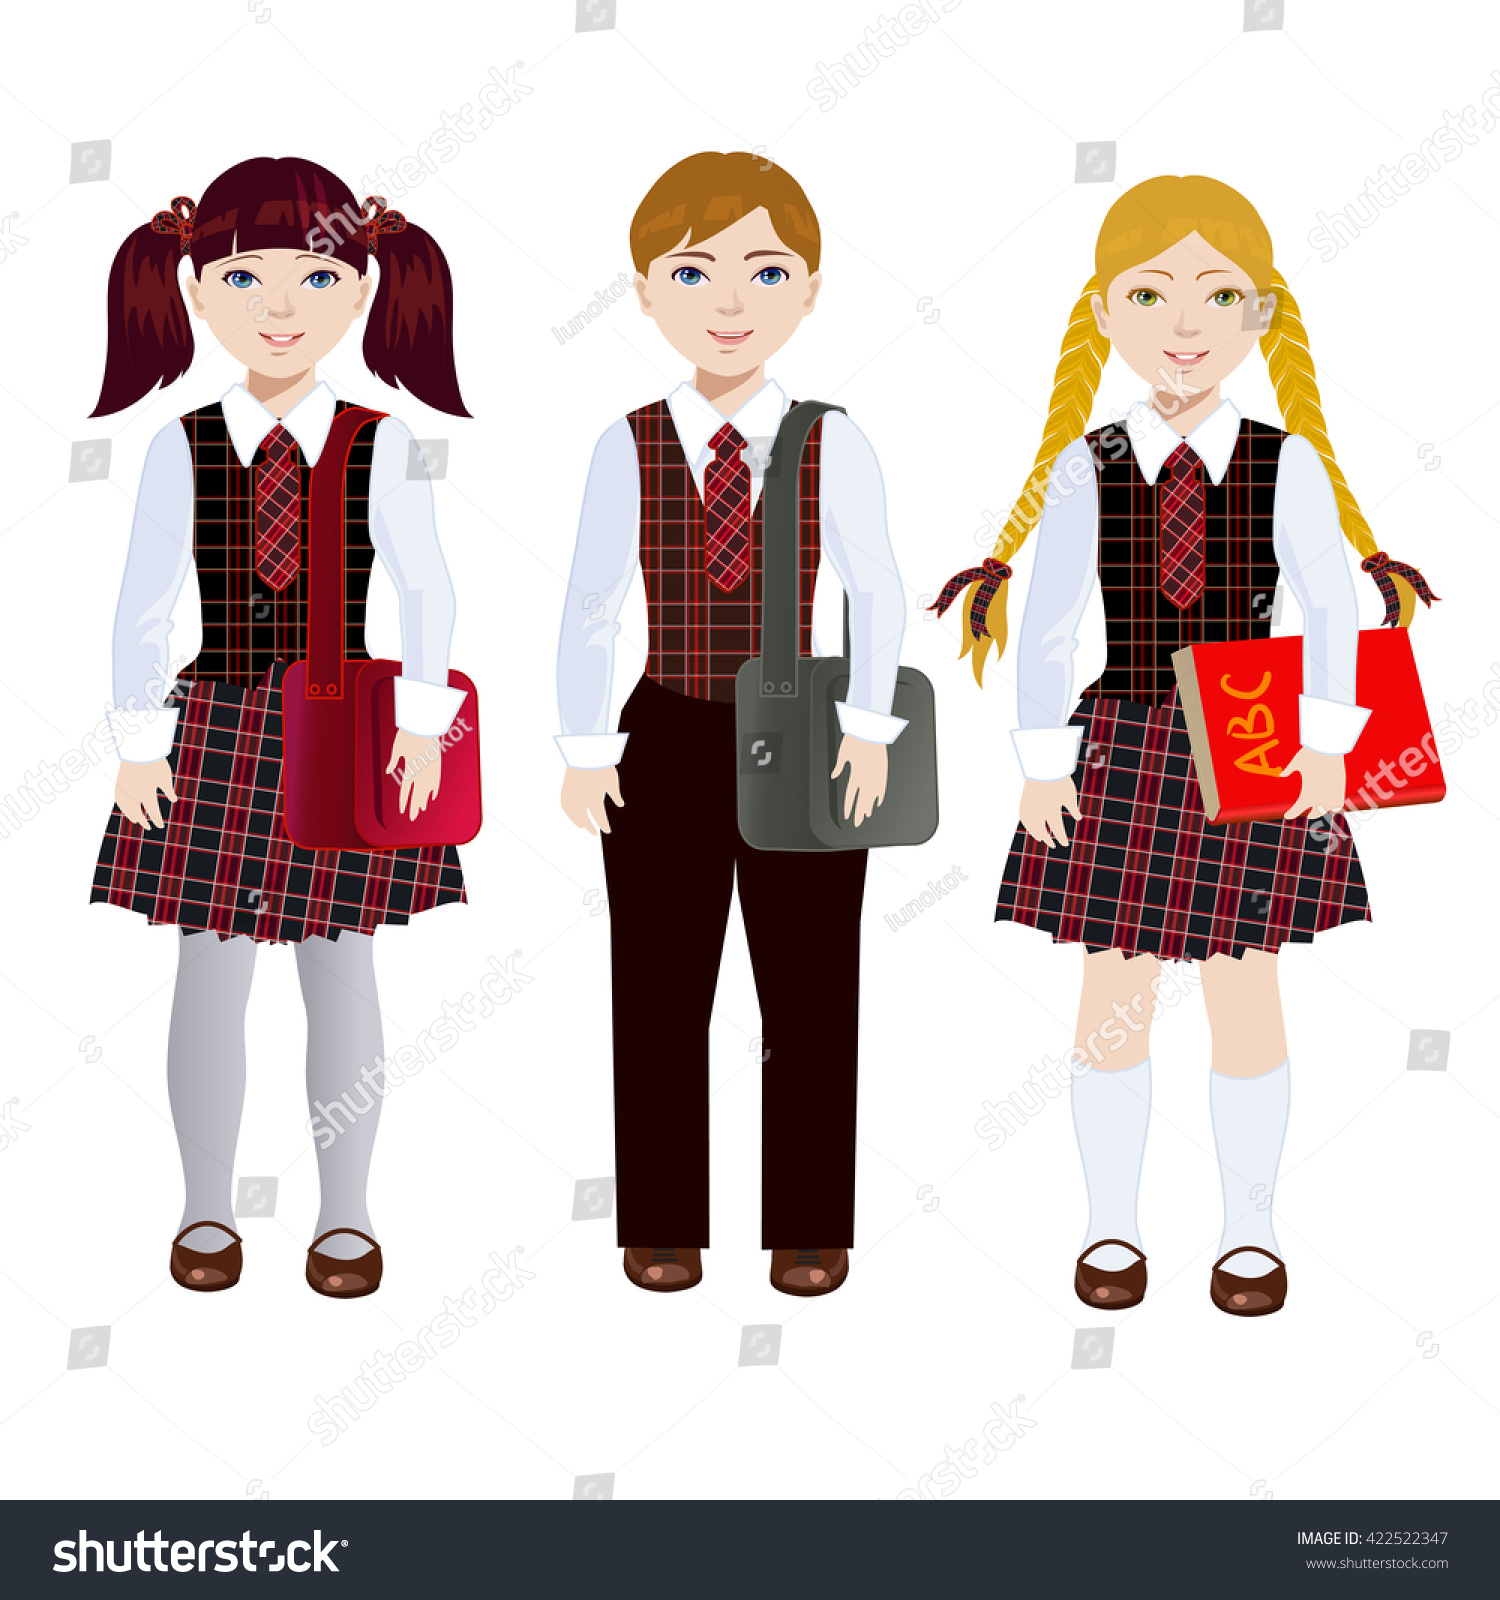 Get help with school uniform costs Check if your local council provides help with the cost of school uniform and PE kit. If your council does not offer help, ask your child's school directly.